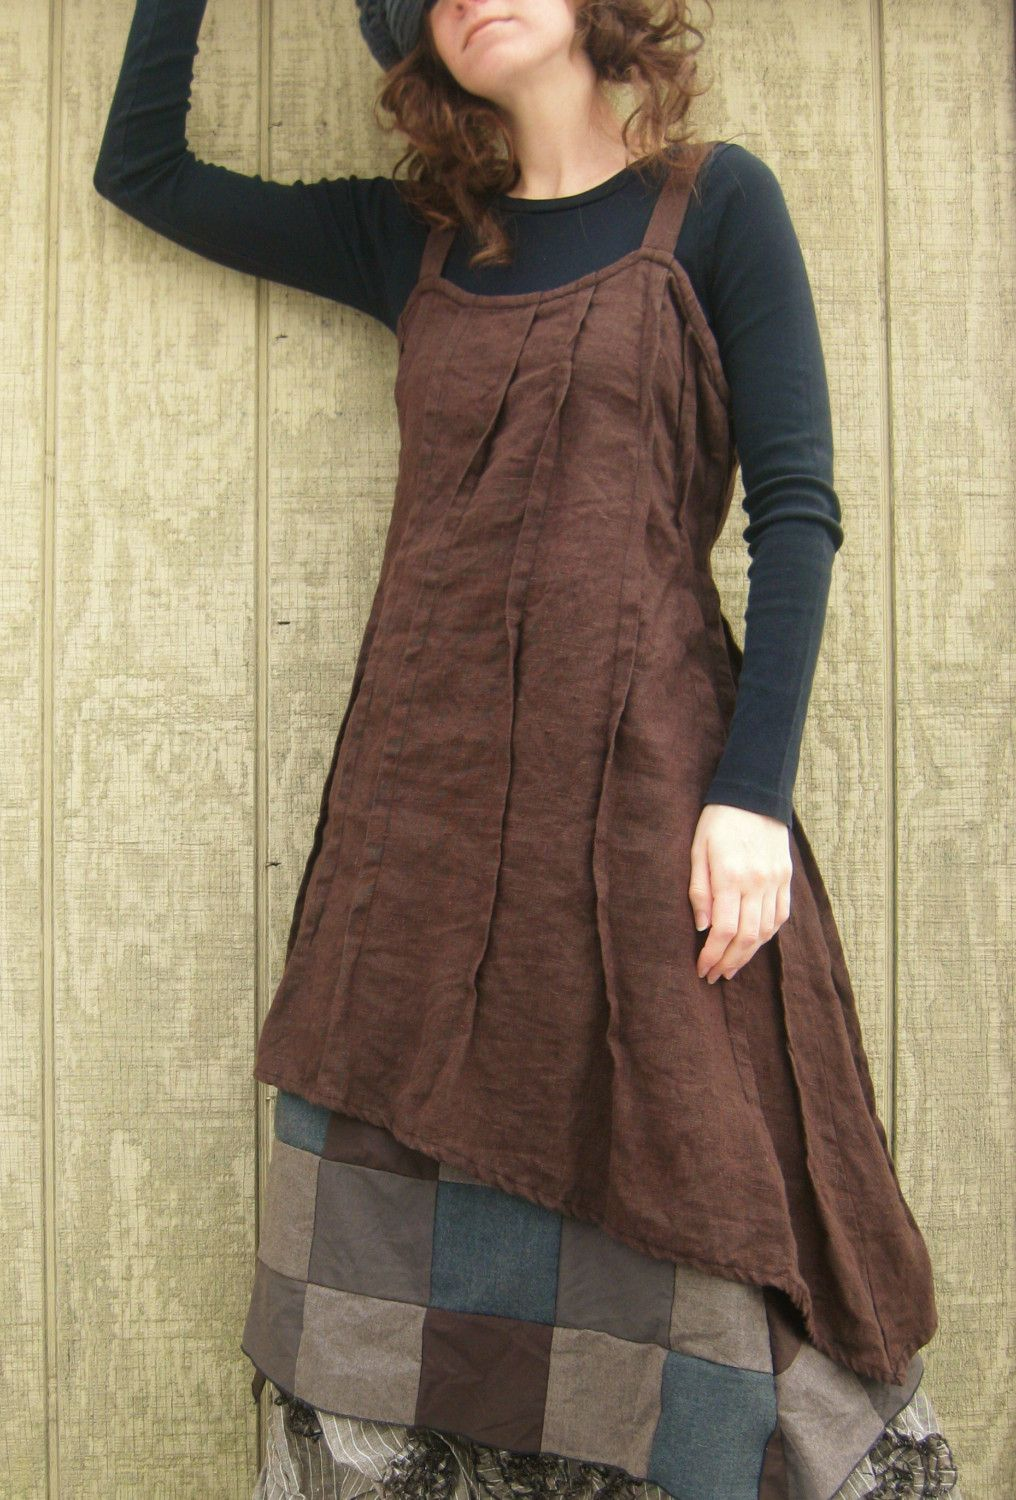 Brown Linen Slant Dress reserved for voxxx by sarahclemensclothing, $99.00